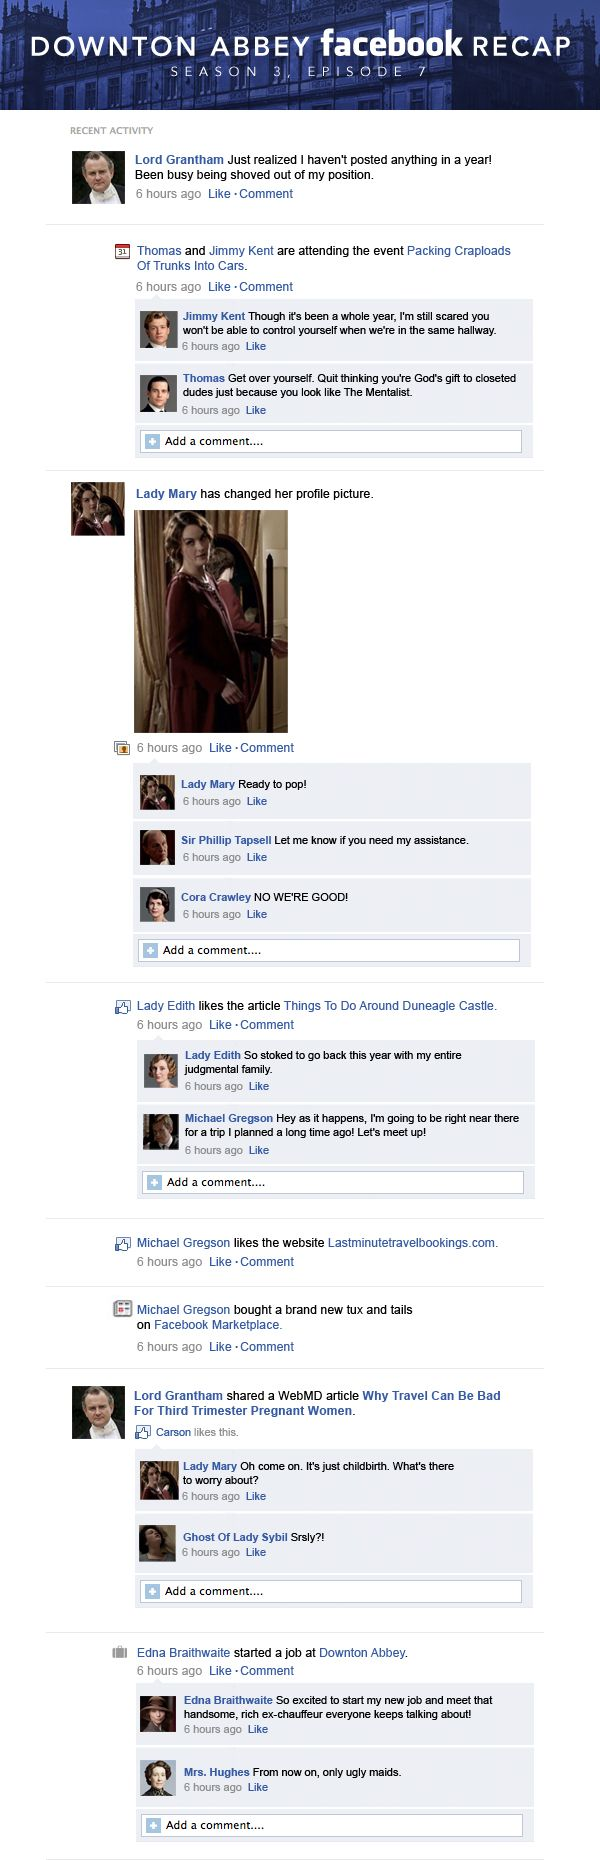 If Downton Abbey took place entirely on Facebook: Season 3, Episode 7.